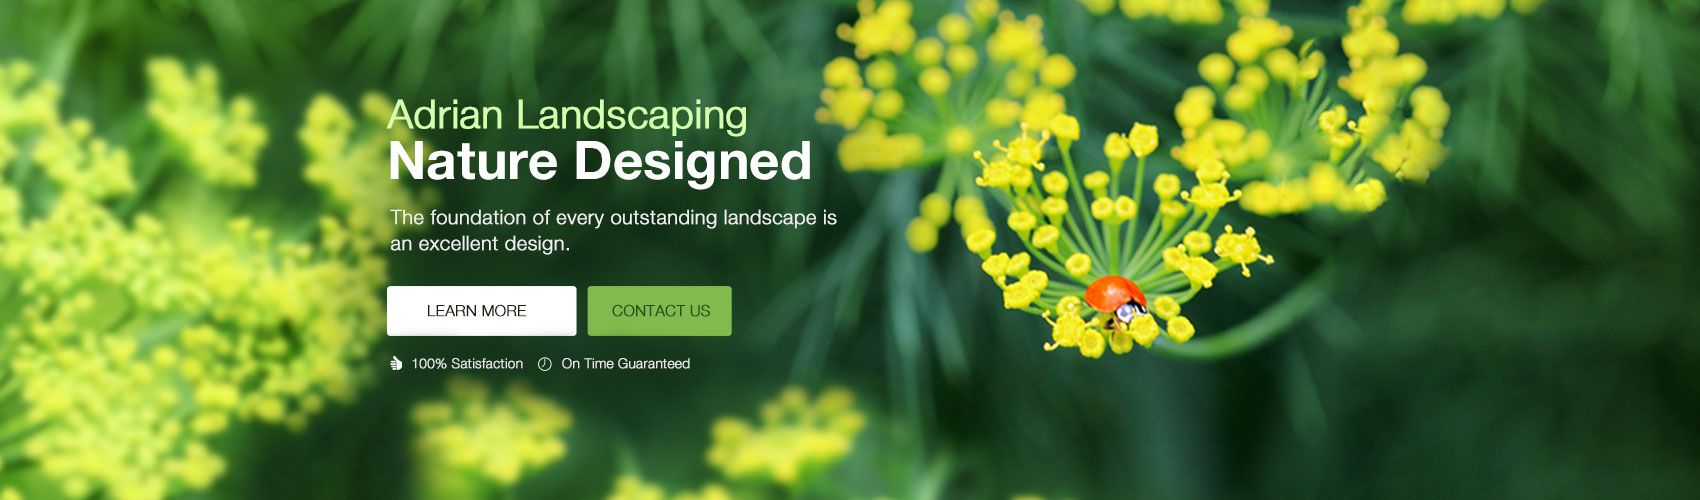 Adrian Landscaping South Florida